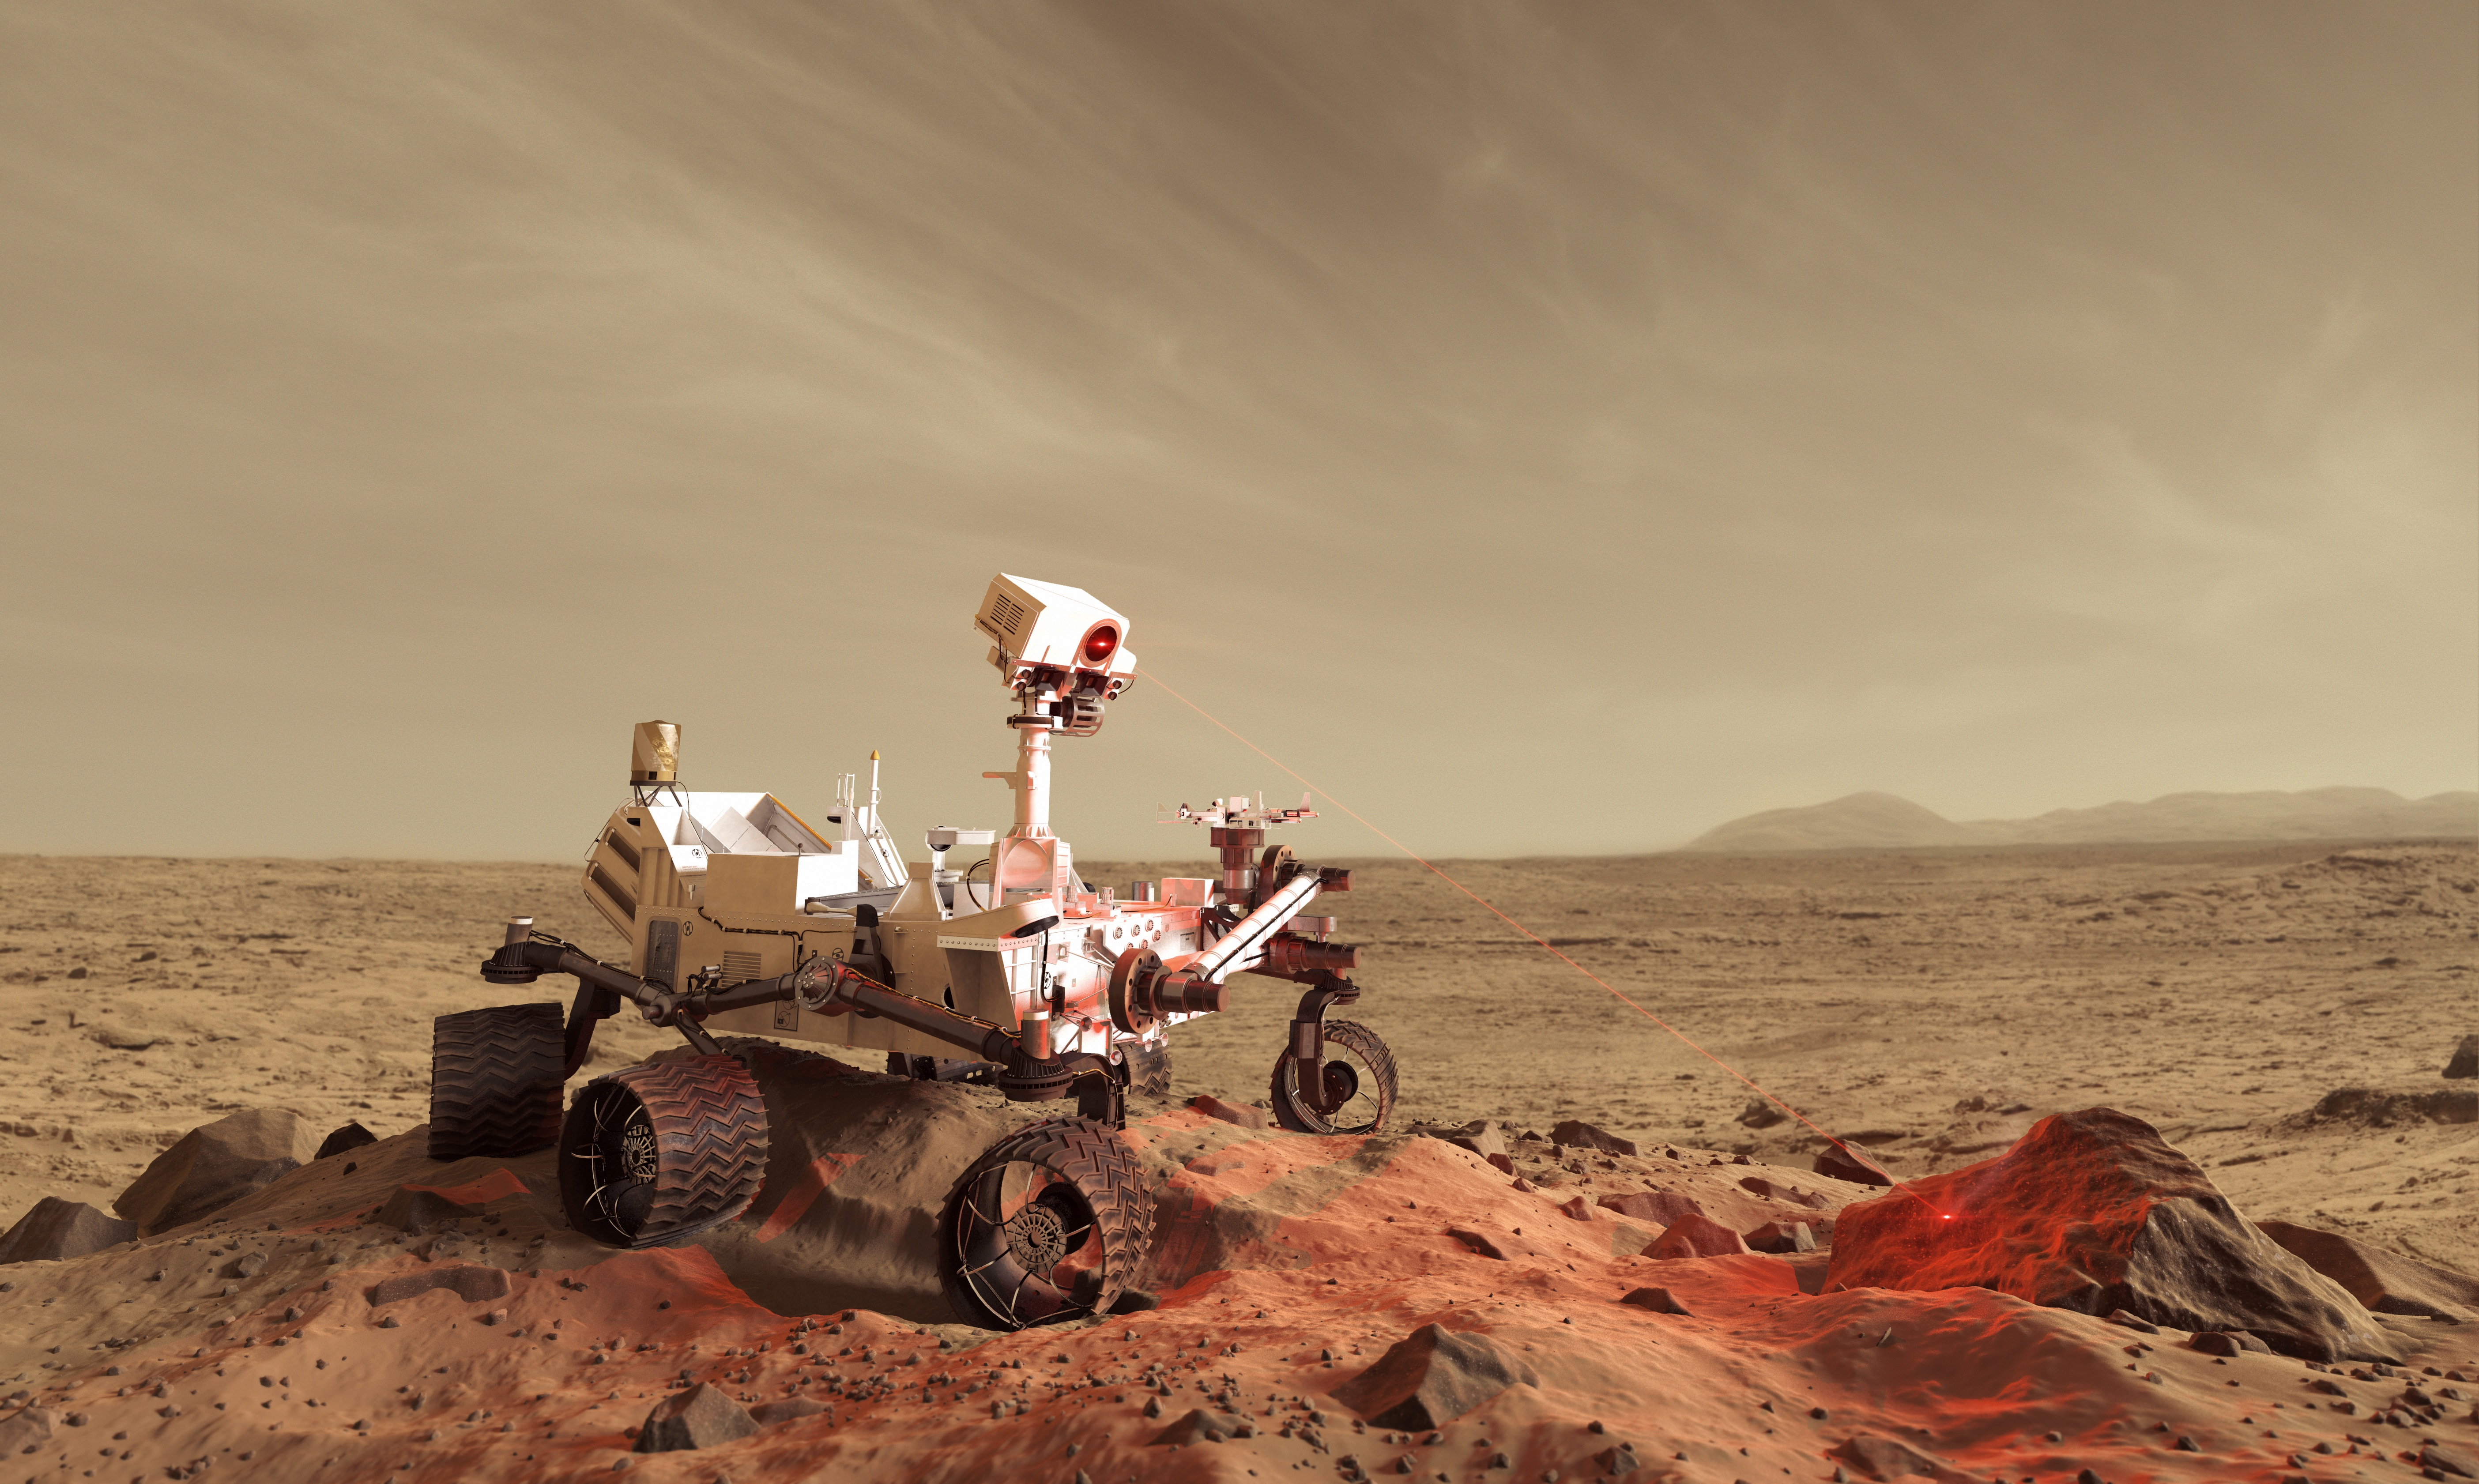 curiosity rover on mars background - photo #22